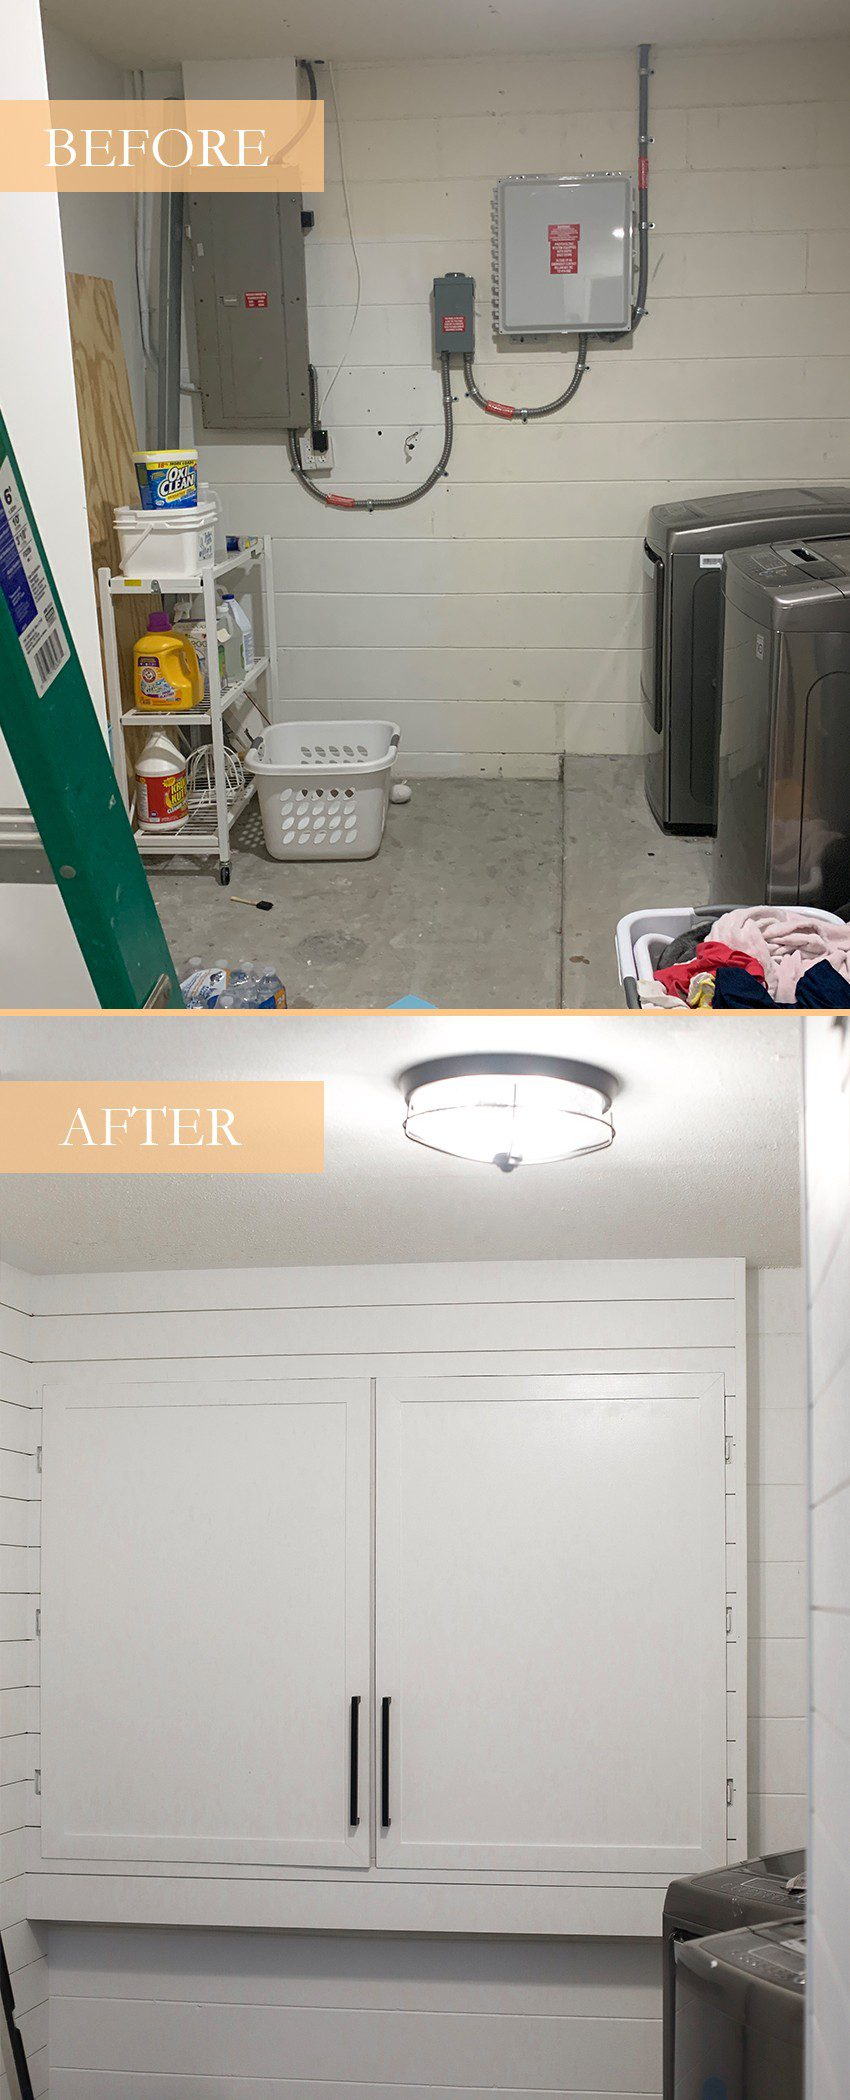 DIY for Covering your Breaker Boxes: A Faux Cabinet Tutorial by popular Florida DIY blog, Fresh Mommy: before and after image of a laundry room with exposed utility boxes.